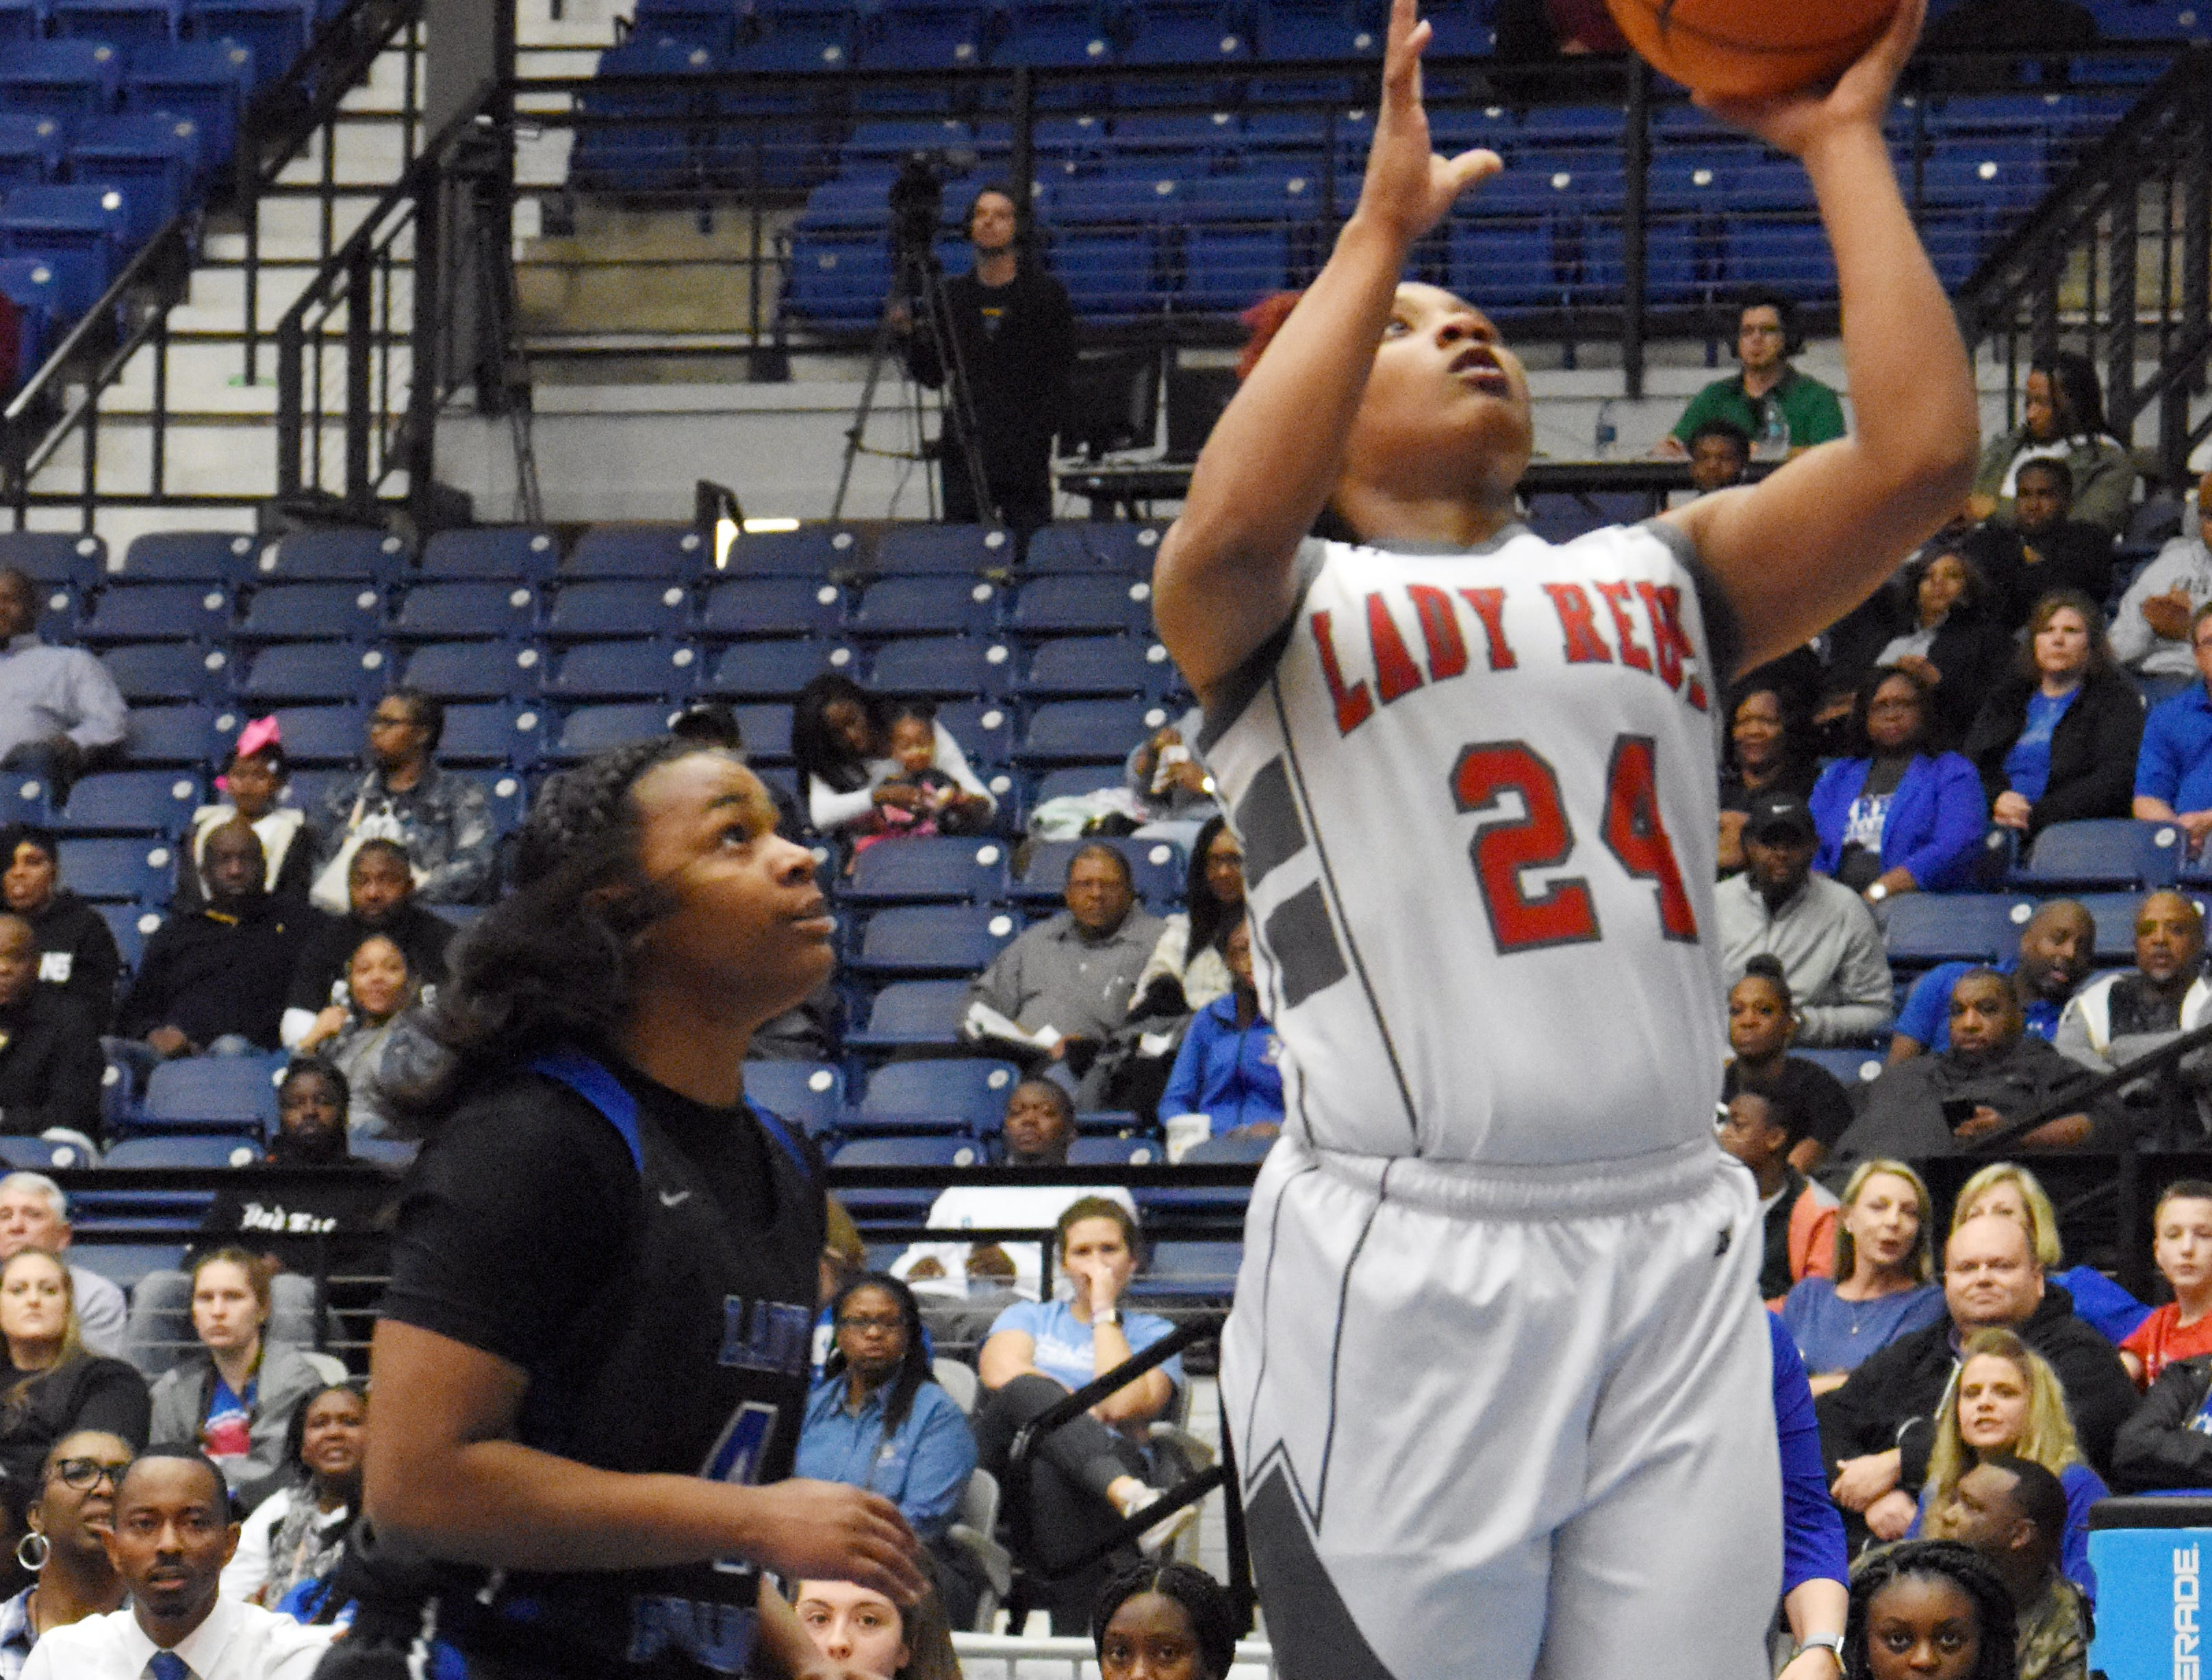 North Caddo's Destiny Rice (24, right) goes for two against Red River's Morgyn Payne (4, left) in the Class 2A semifinal game of the 2019 Allstate Sugar Bowl 2019 Louisiana High School Athletic Association Girl's State Basketball Marsh Madness held Thursday, Feb. 28, 2019 at the Rapides Parish Coliseum in Alexandria.